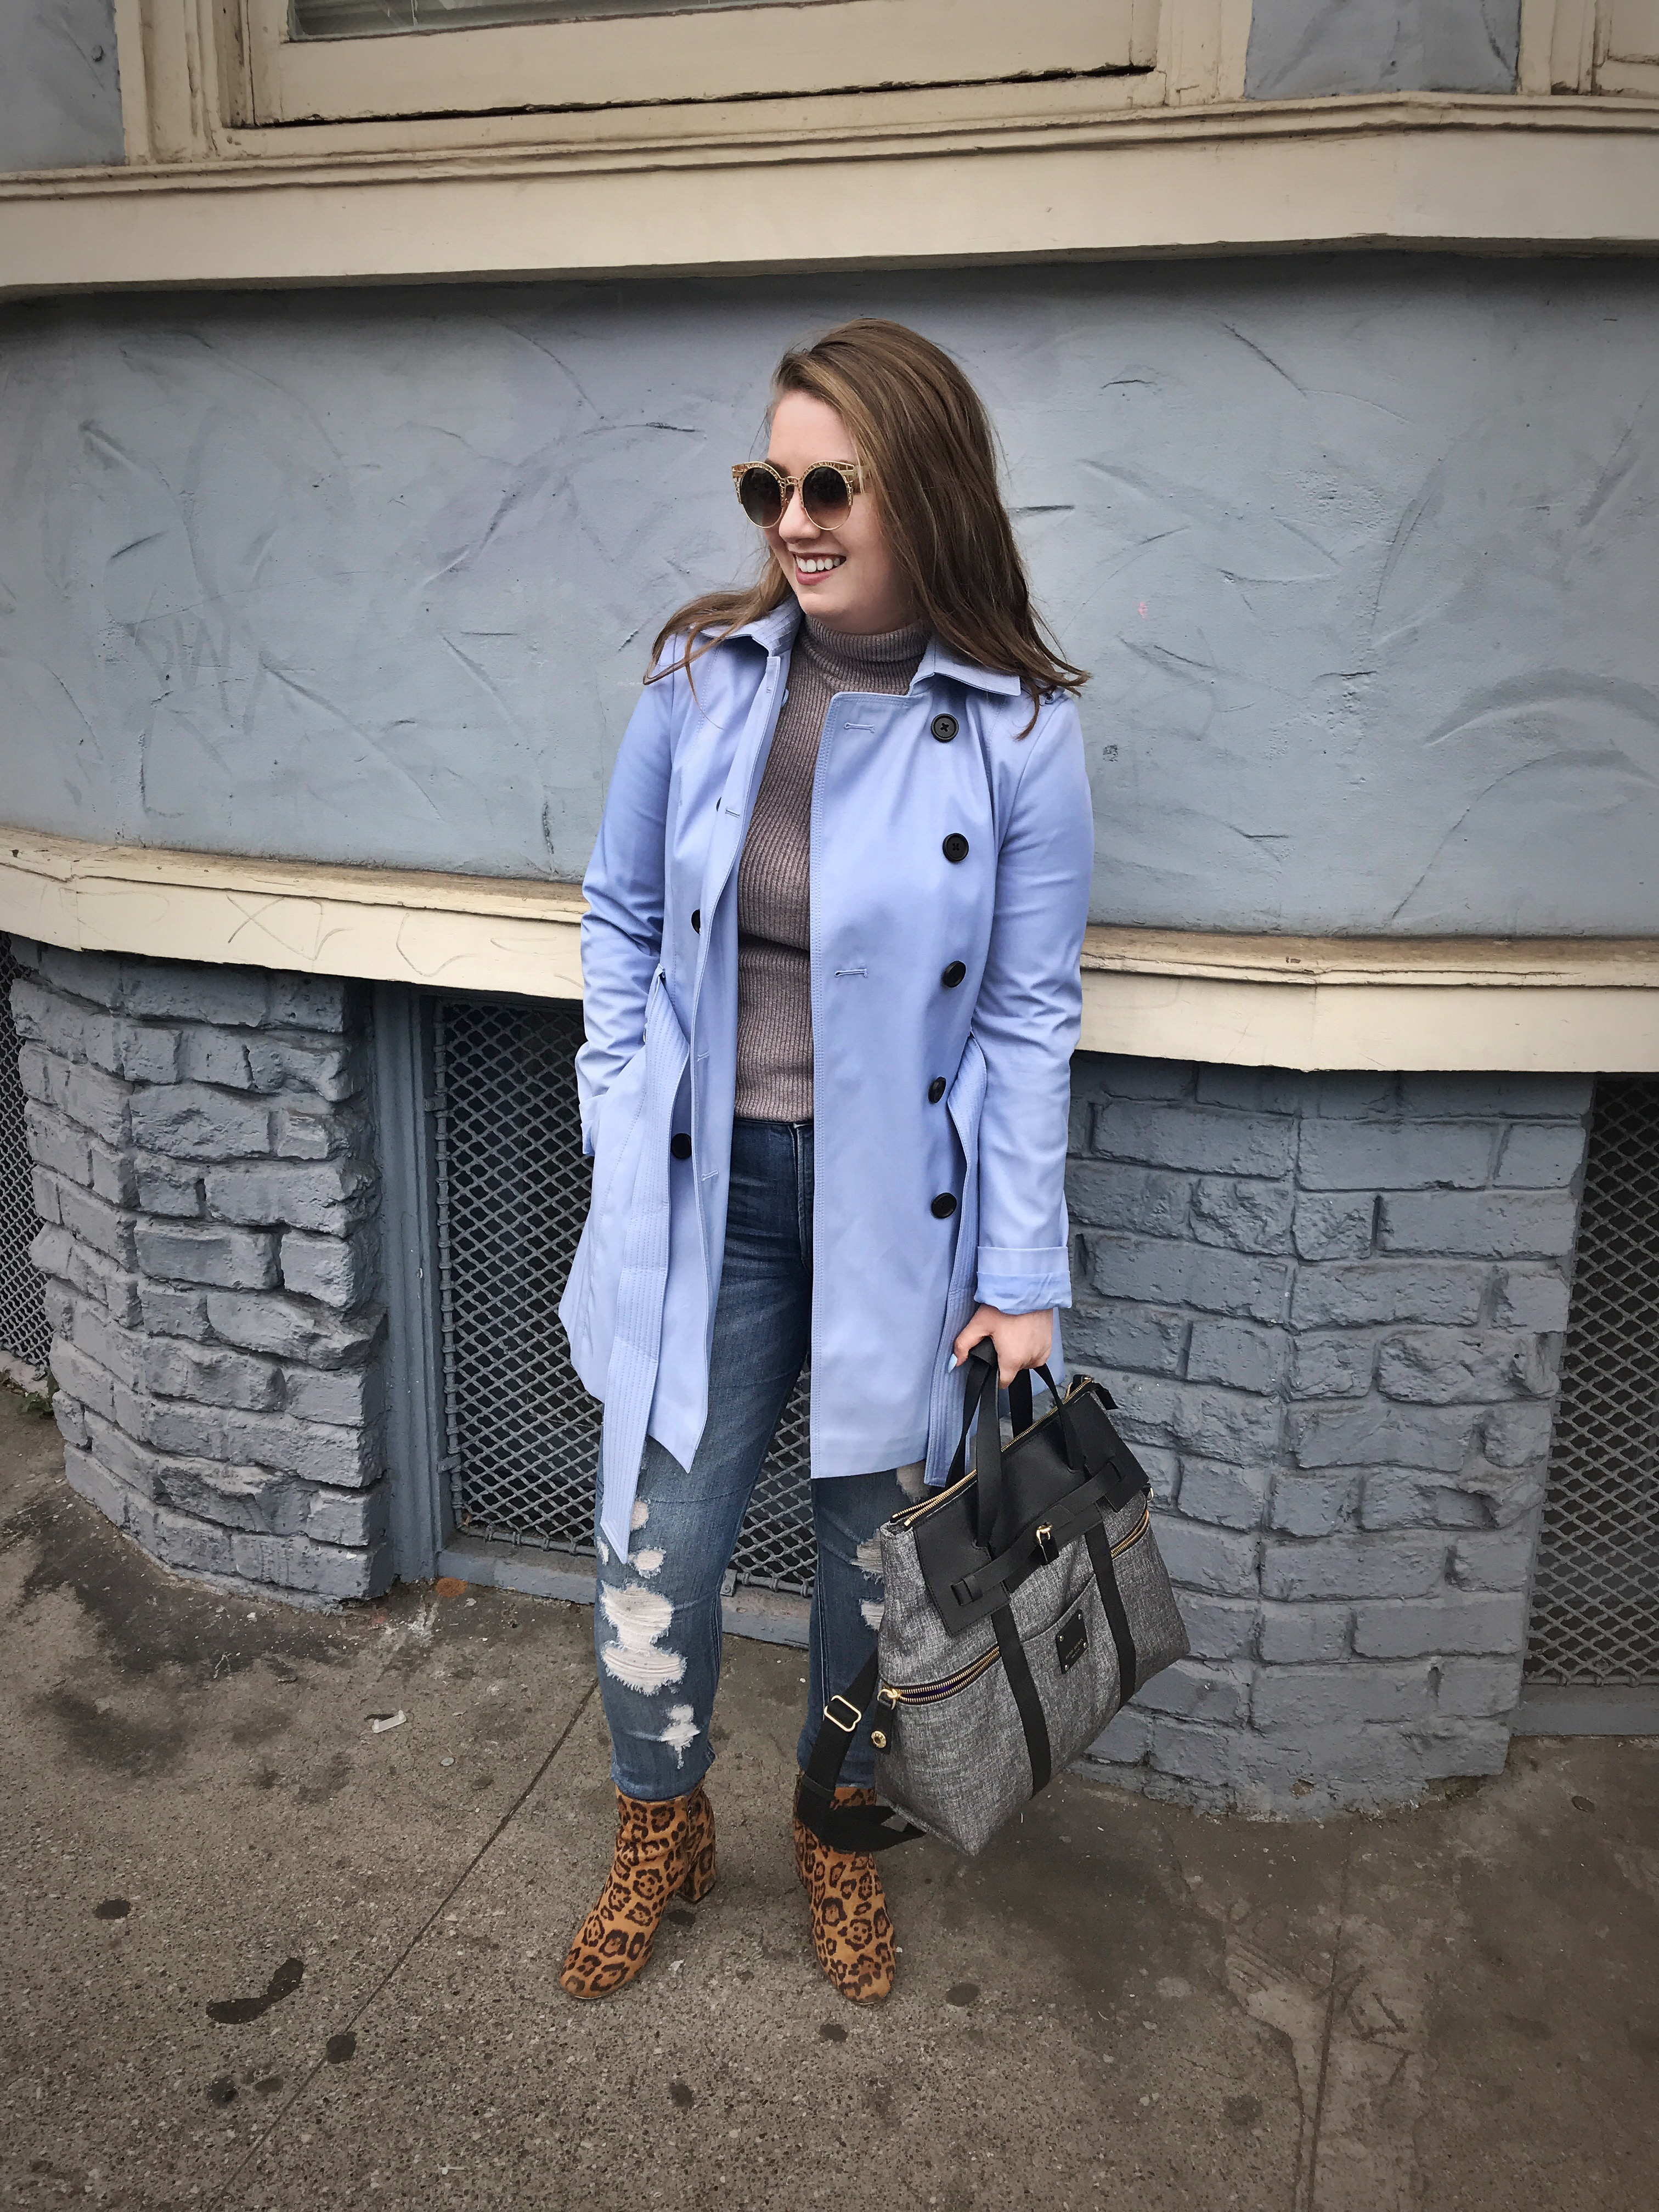 6f27a31ff My San Francisco Brunch Outfit • She smiles